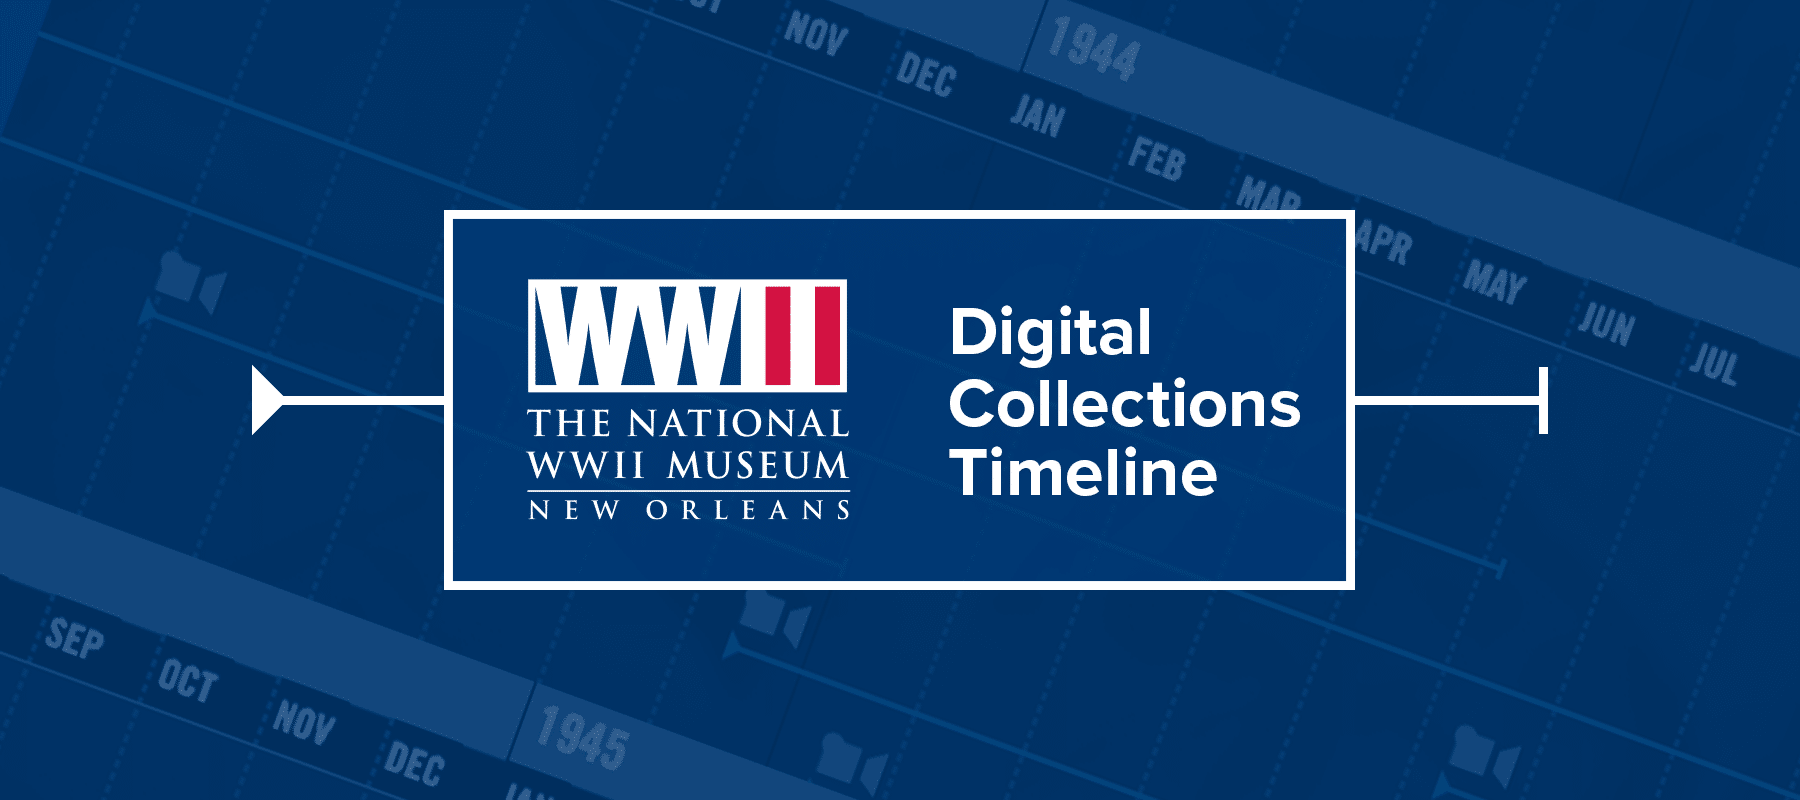 The National WWII Museum New Orleans Digital Collection Timeline